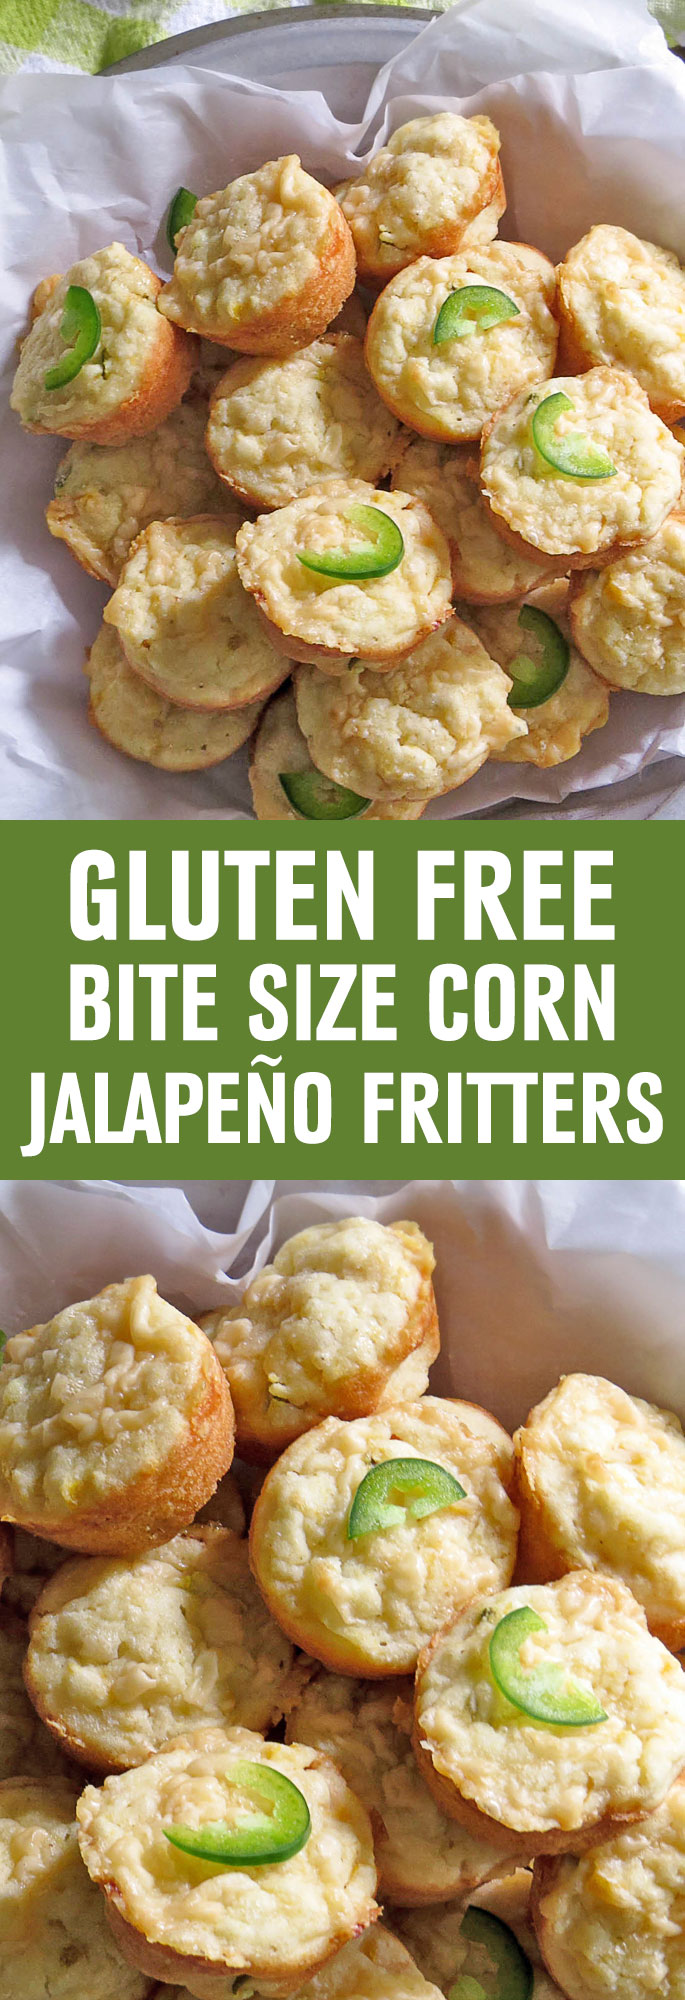 Spiked with minced jalapeno pepper and grated Parmesan cheese, these Gluten Free bite size fritters make the perfect side with a bowl of chili or soup in cooler weather.  Shared via http://www.gluteninsight.com